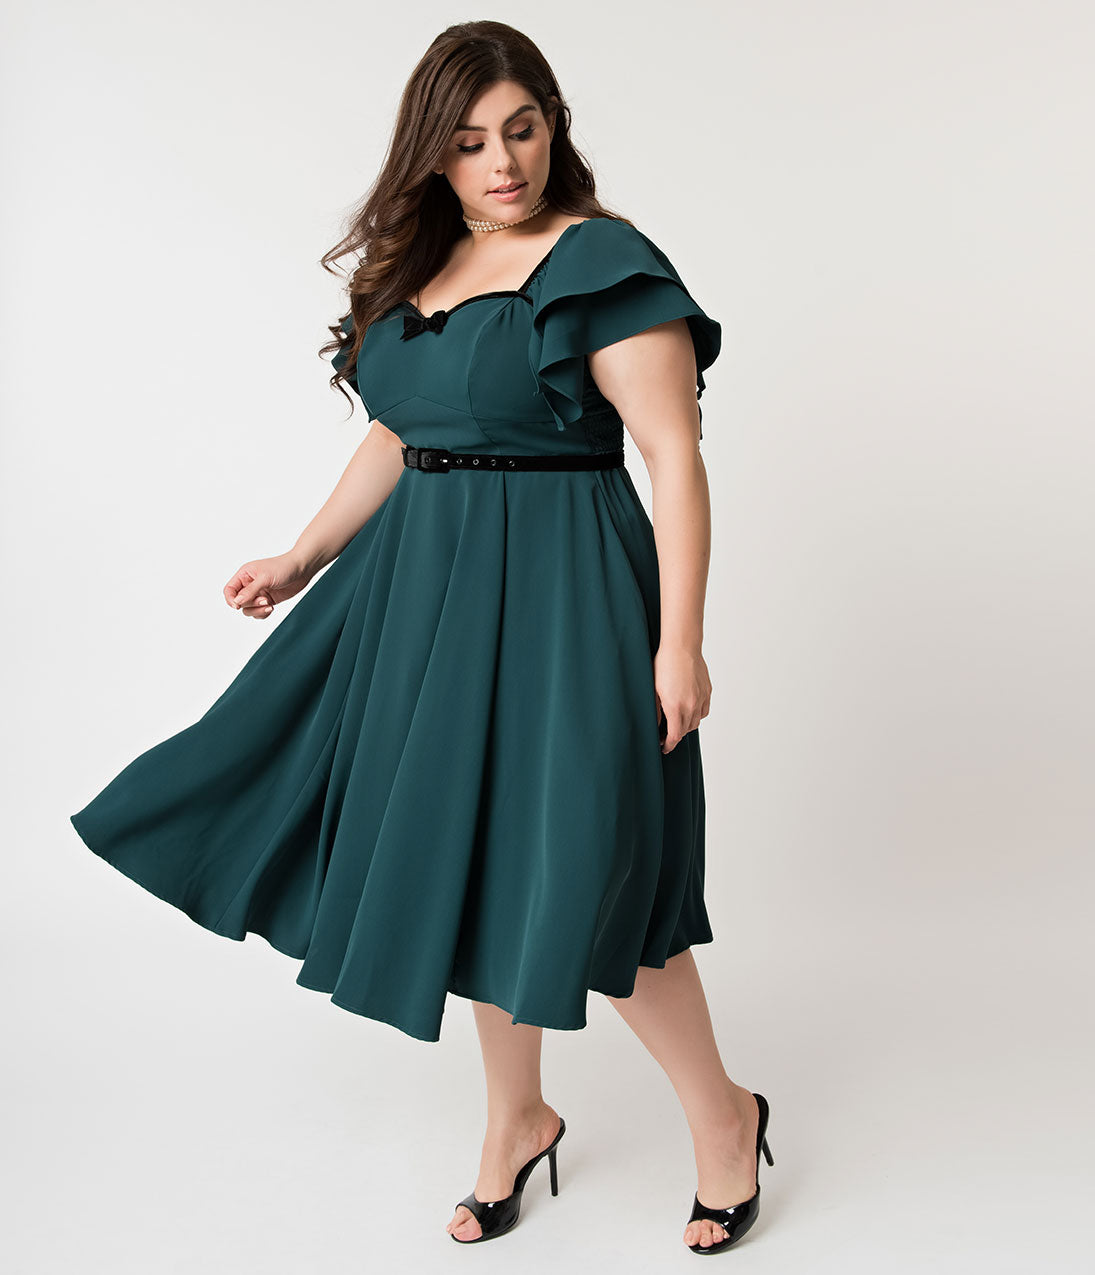 1930s Art Deco Plus Size Dresses | Tea Dresses, Party Dresses Micheline Pitt For Unique Vintage Plus Size Hunter Green Carmelita Swing Dress $148.00 AT vintagedancer.com